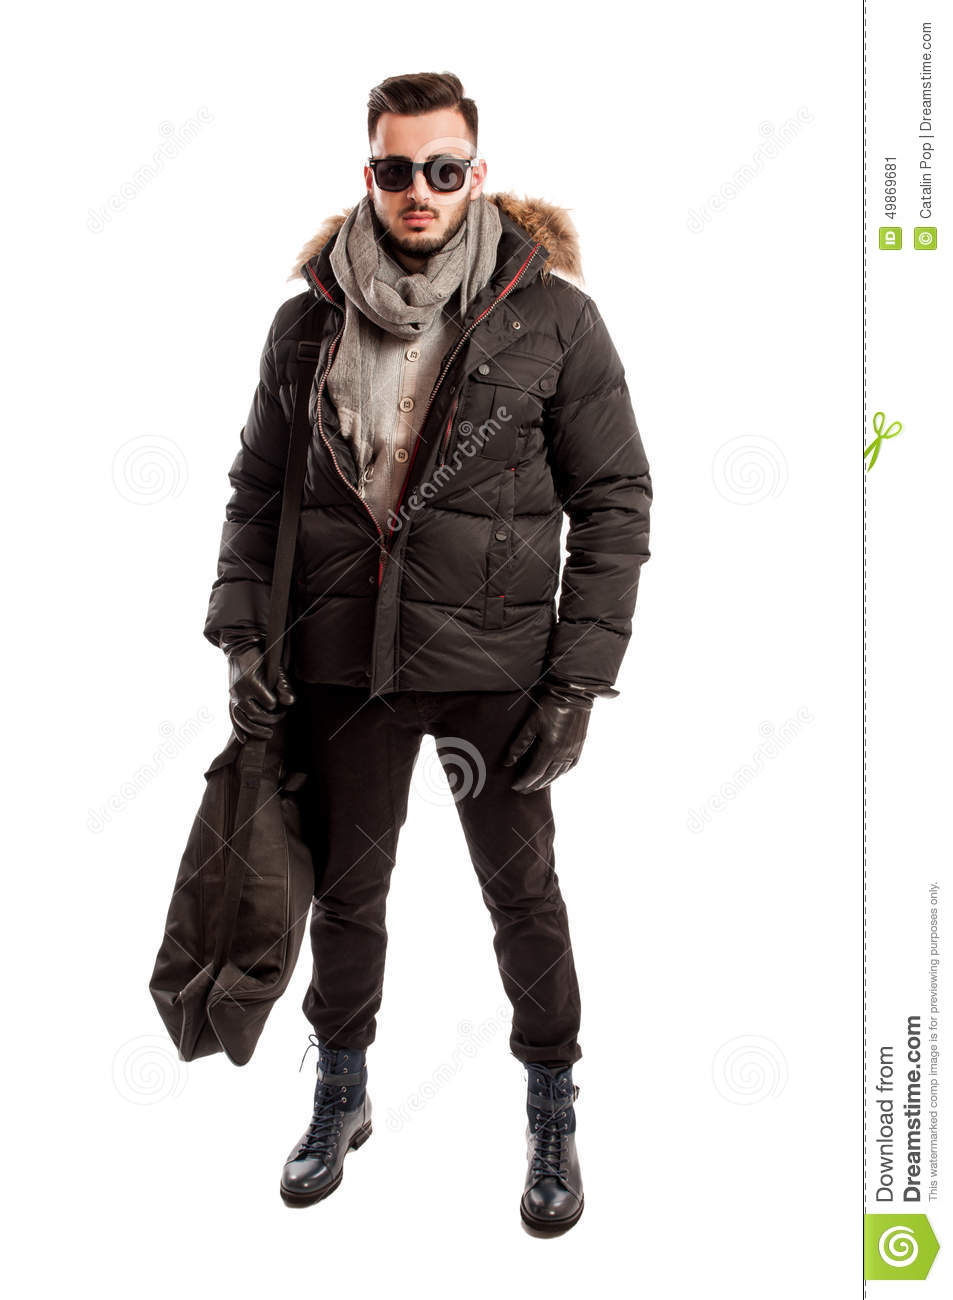 fashionable male model wearing winter clothes and a big